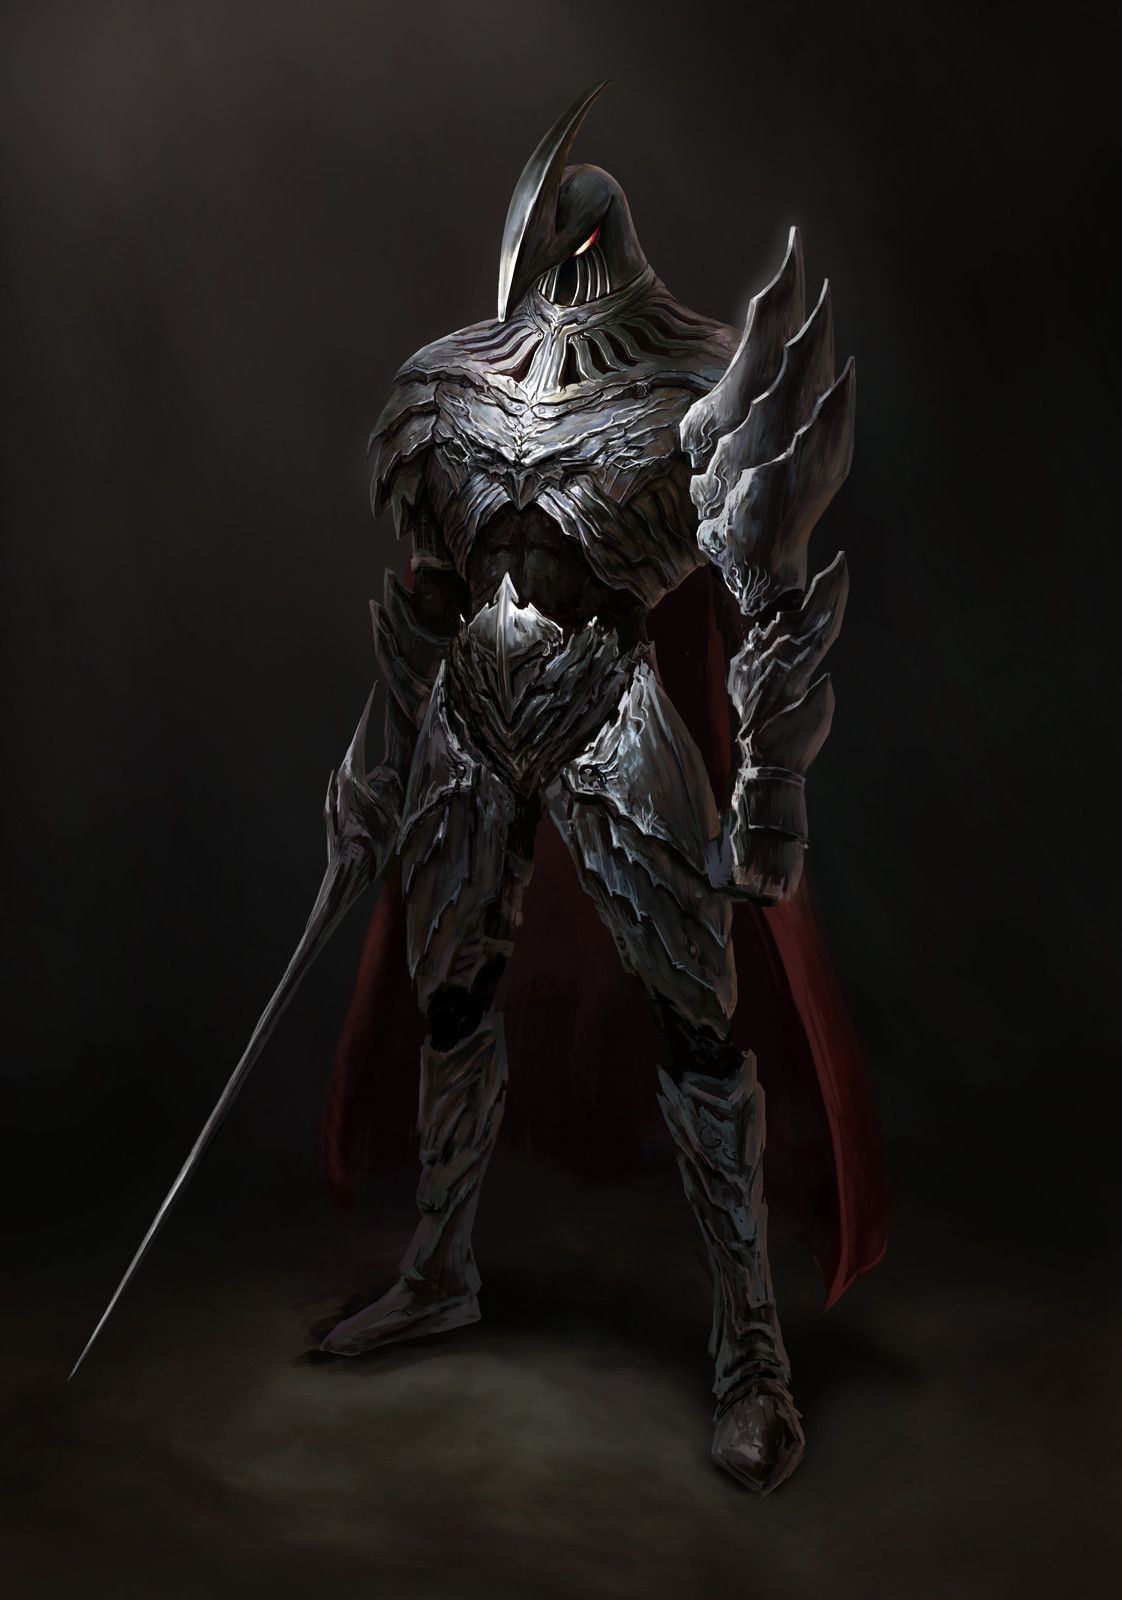 20 Evil Knight Concept Art Pictures And Ideas On Meta Networks